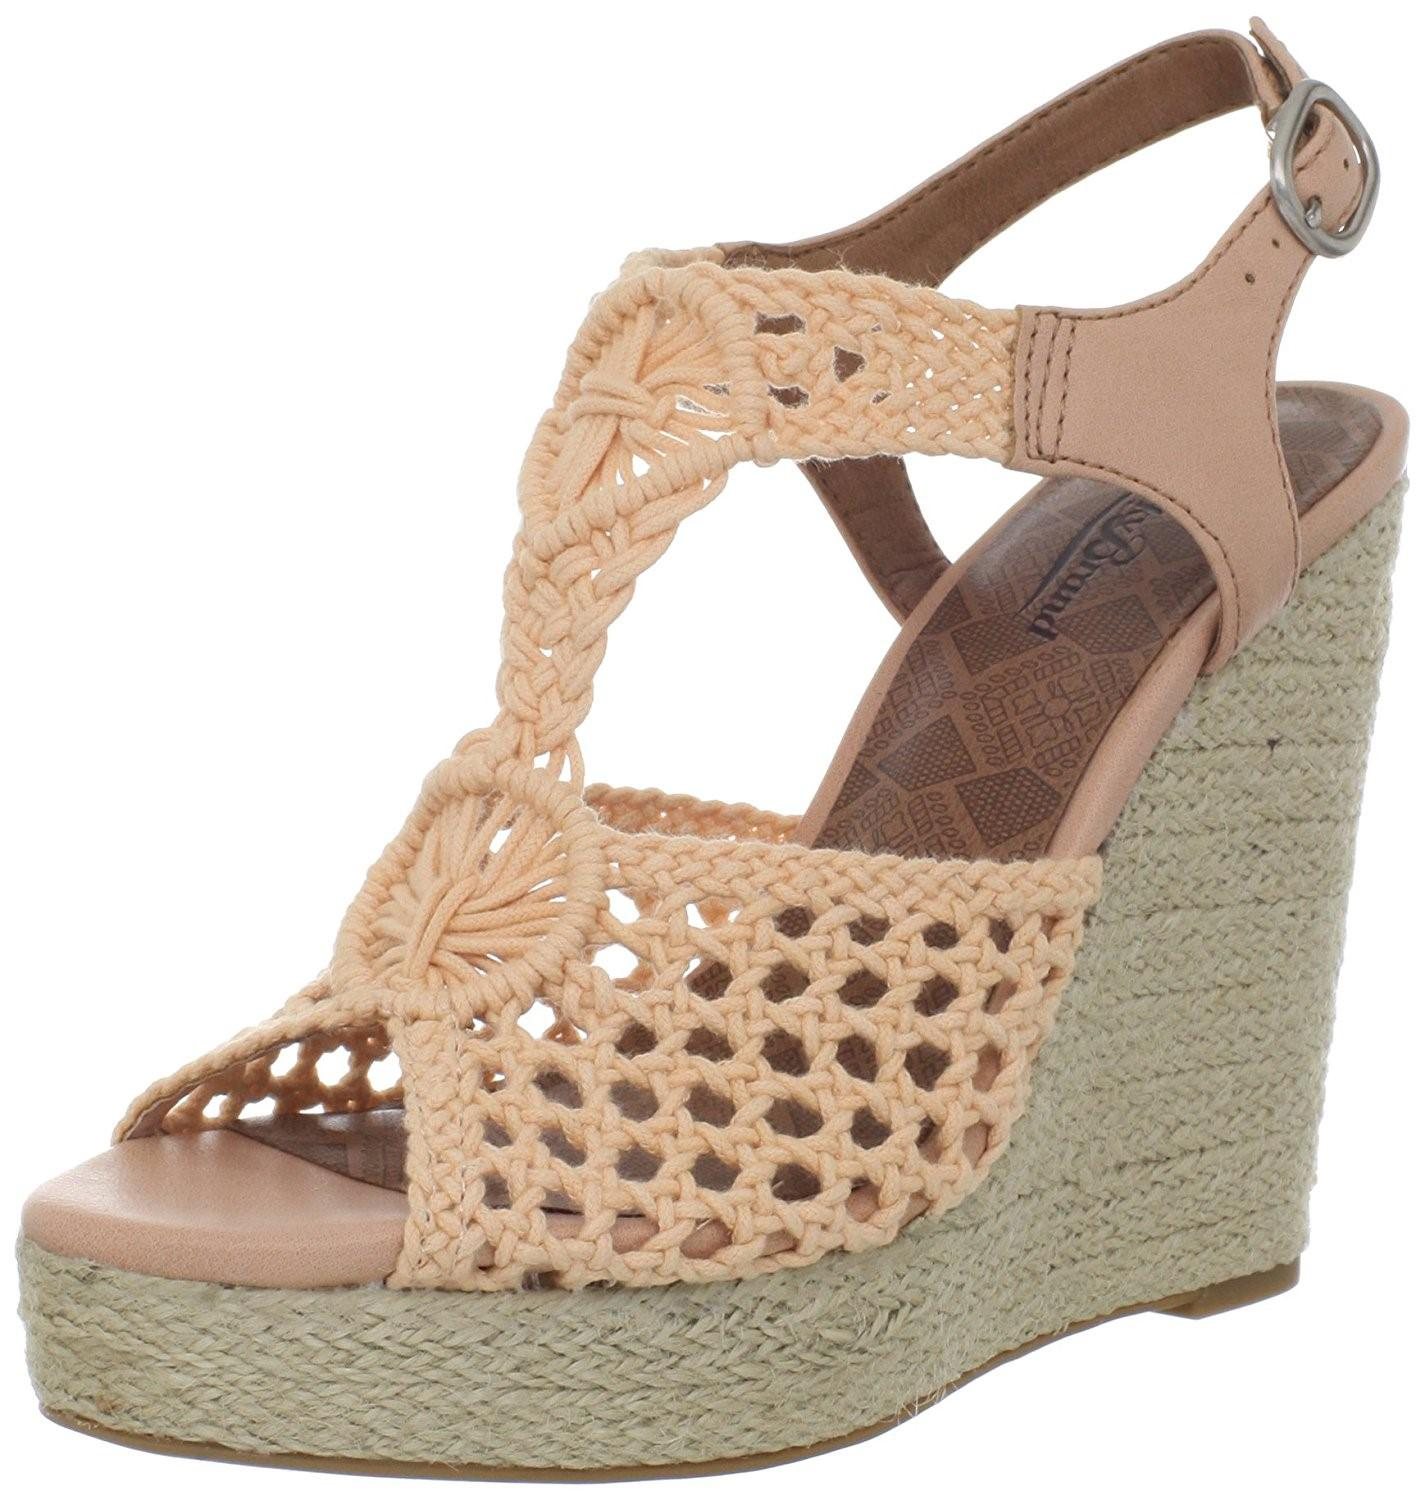 590f6ae48b3 Lyst - Lucky Brand Lucky Women s Rilo Wedge Sandal in Red